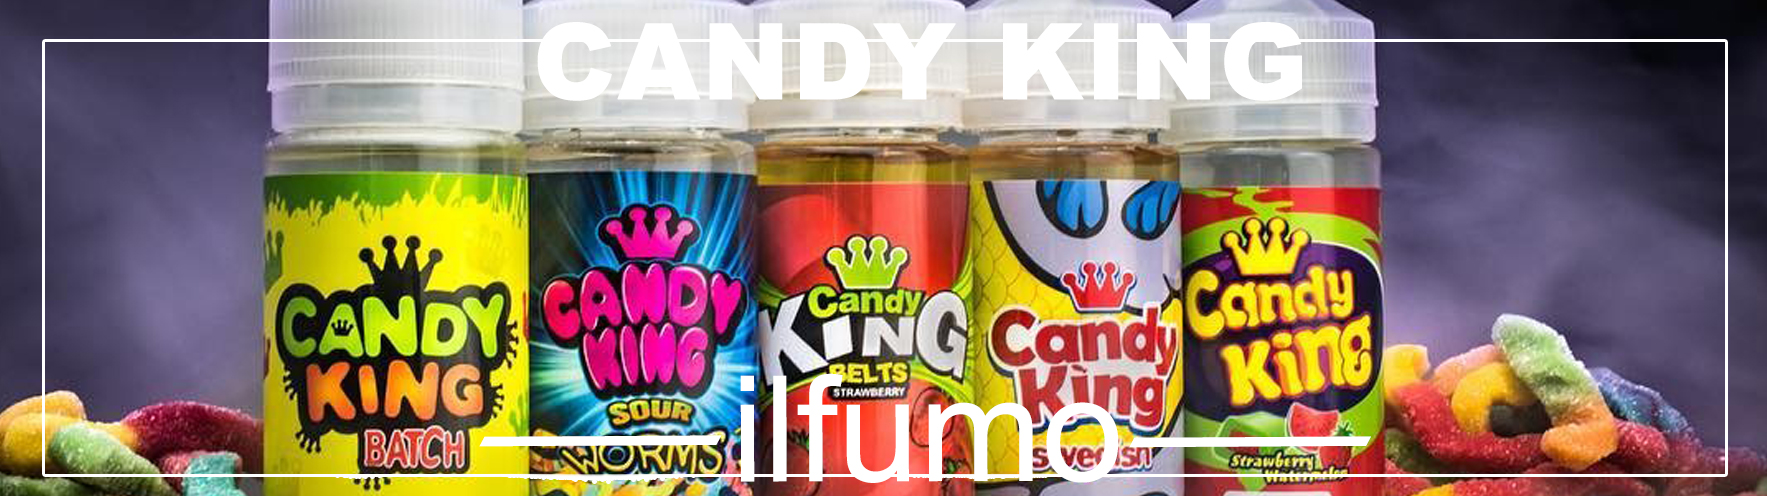 ilfumo candy king optom - Жидкость Candy King